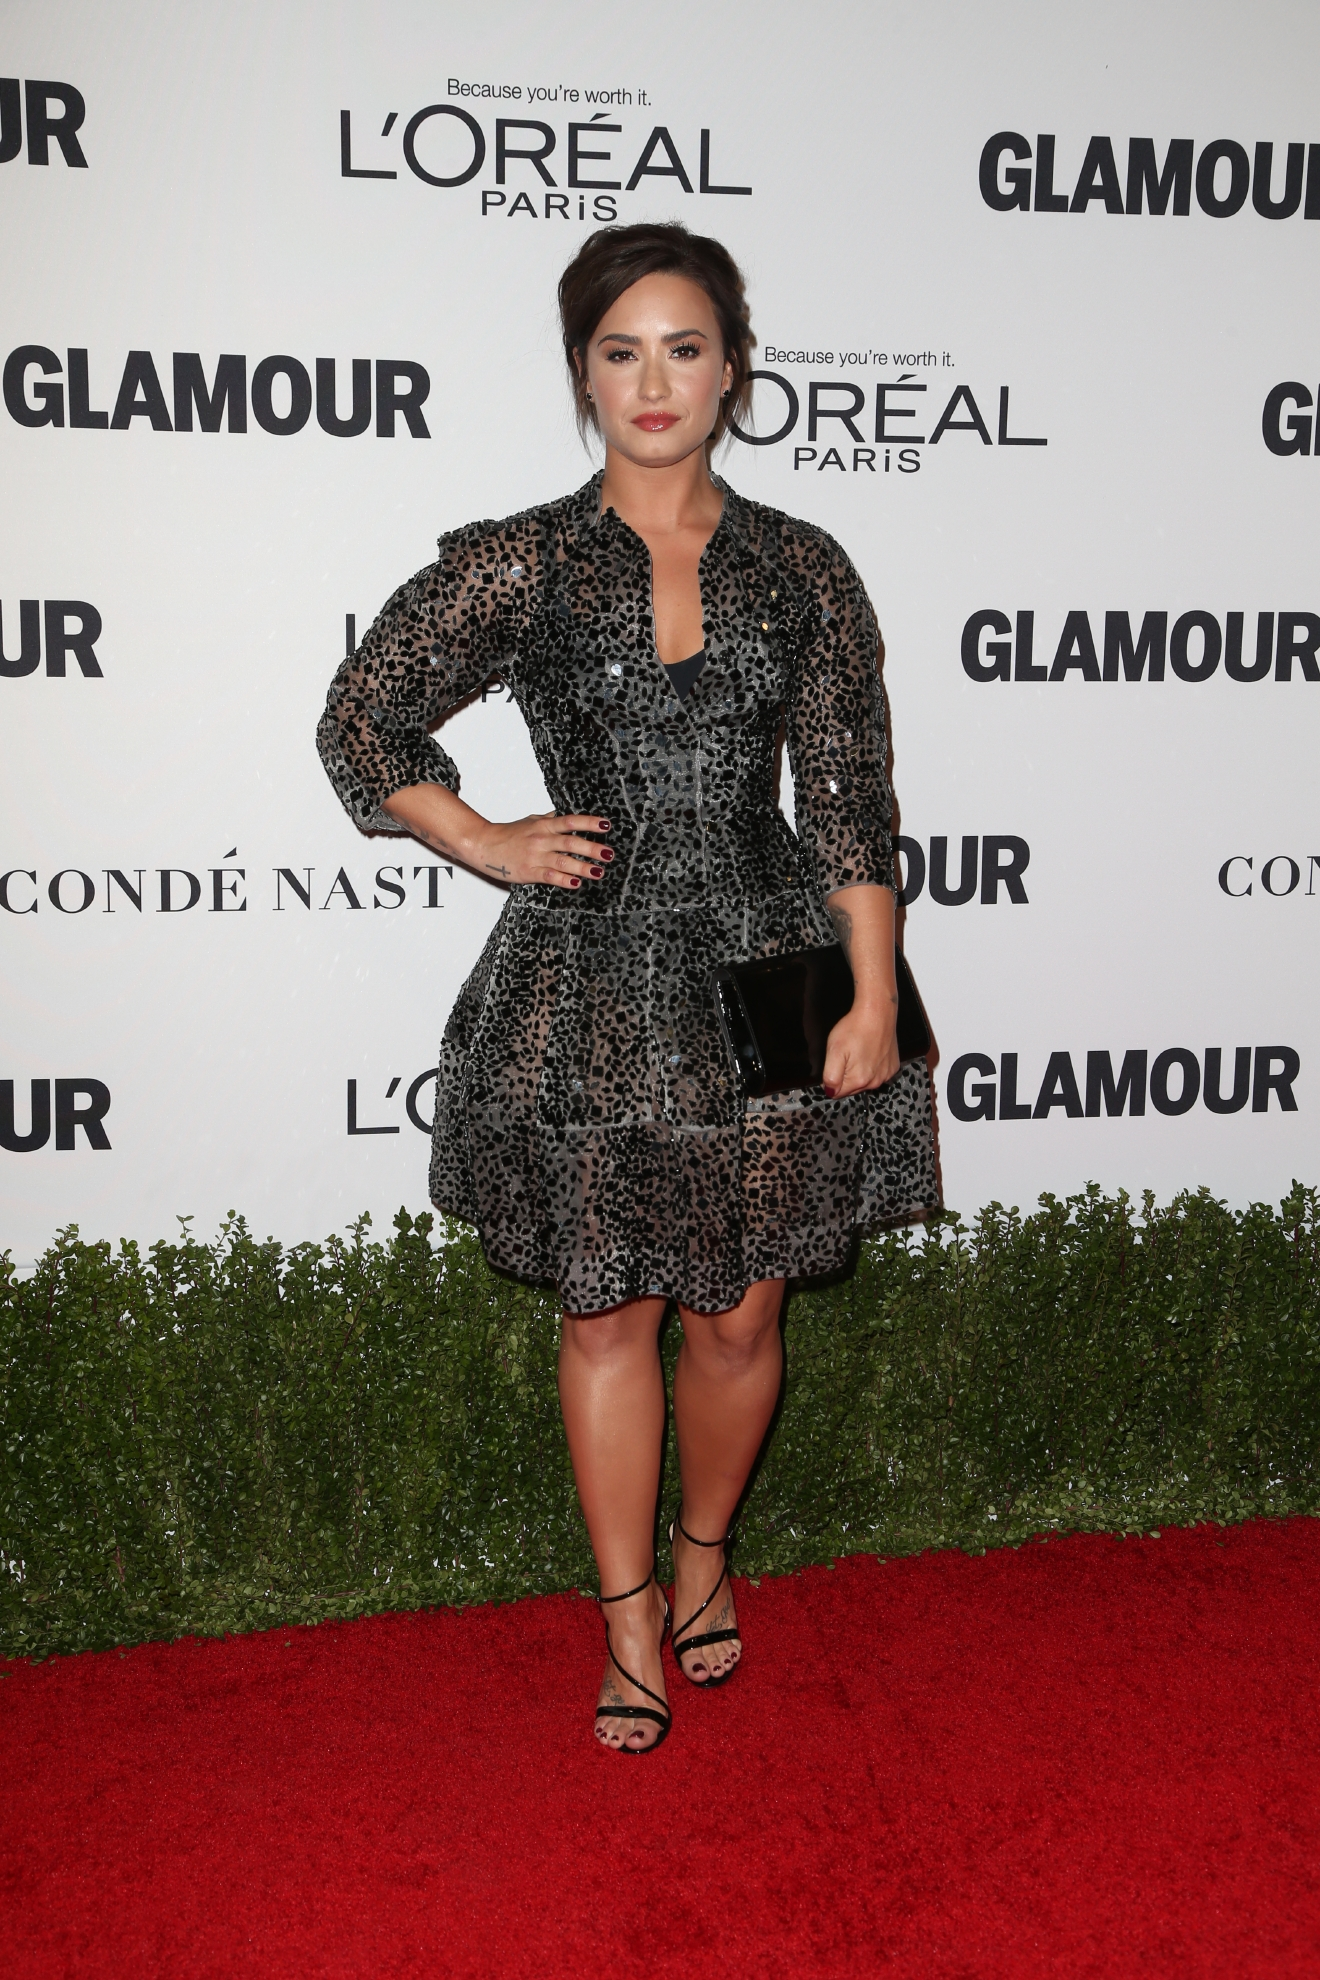 Glamour Women Of The Year 2016 Awards                                    Featuring: Demi Lovato                  Where: Los Angeles, California, United States                  When: 15 Nov 2016                  Credit: FayesVision/WENN.com